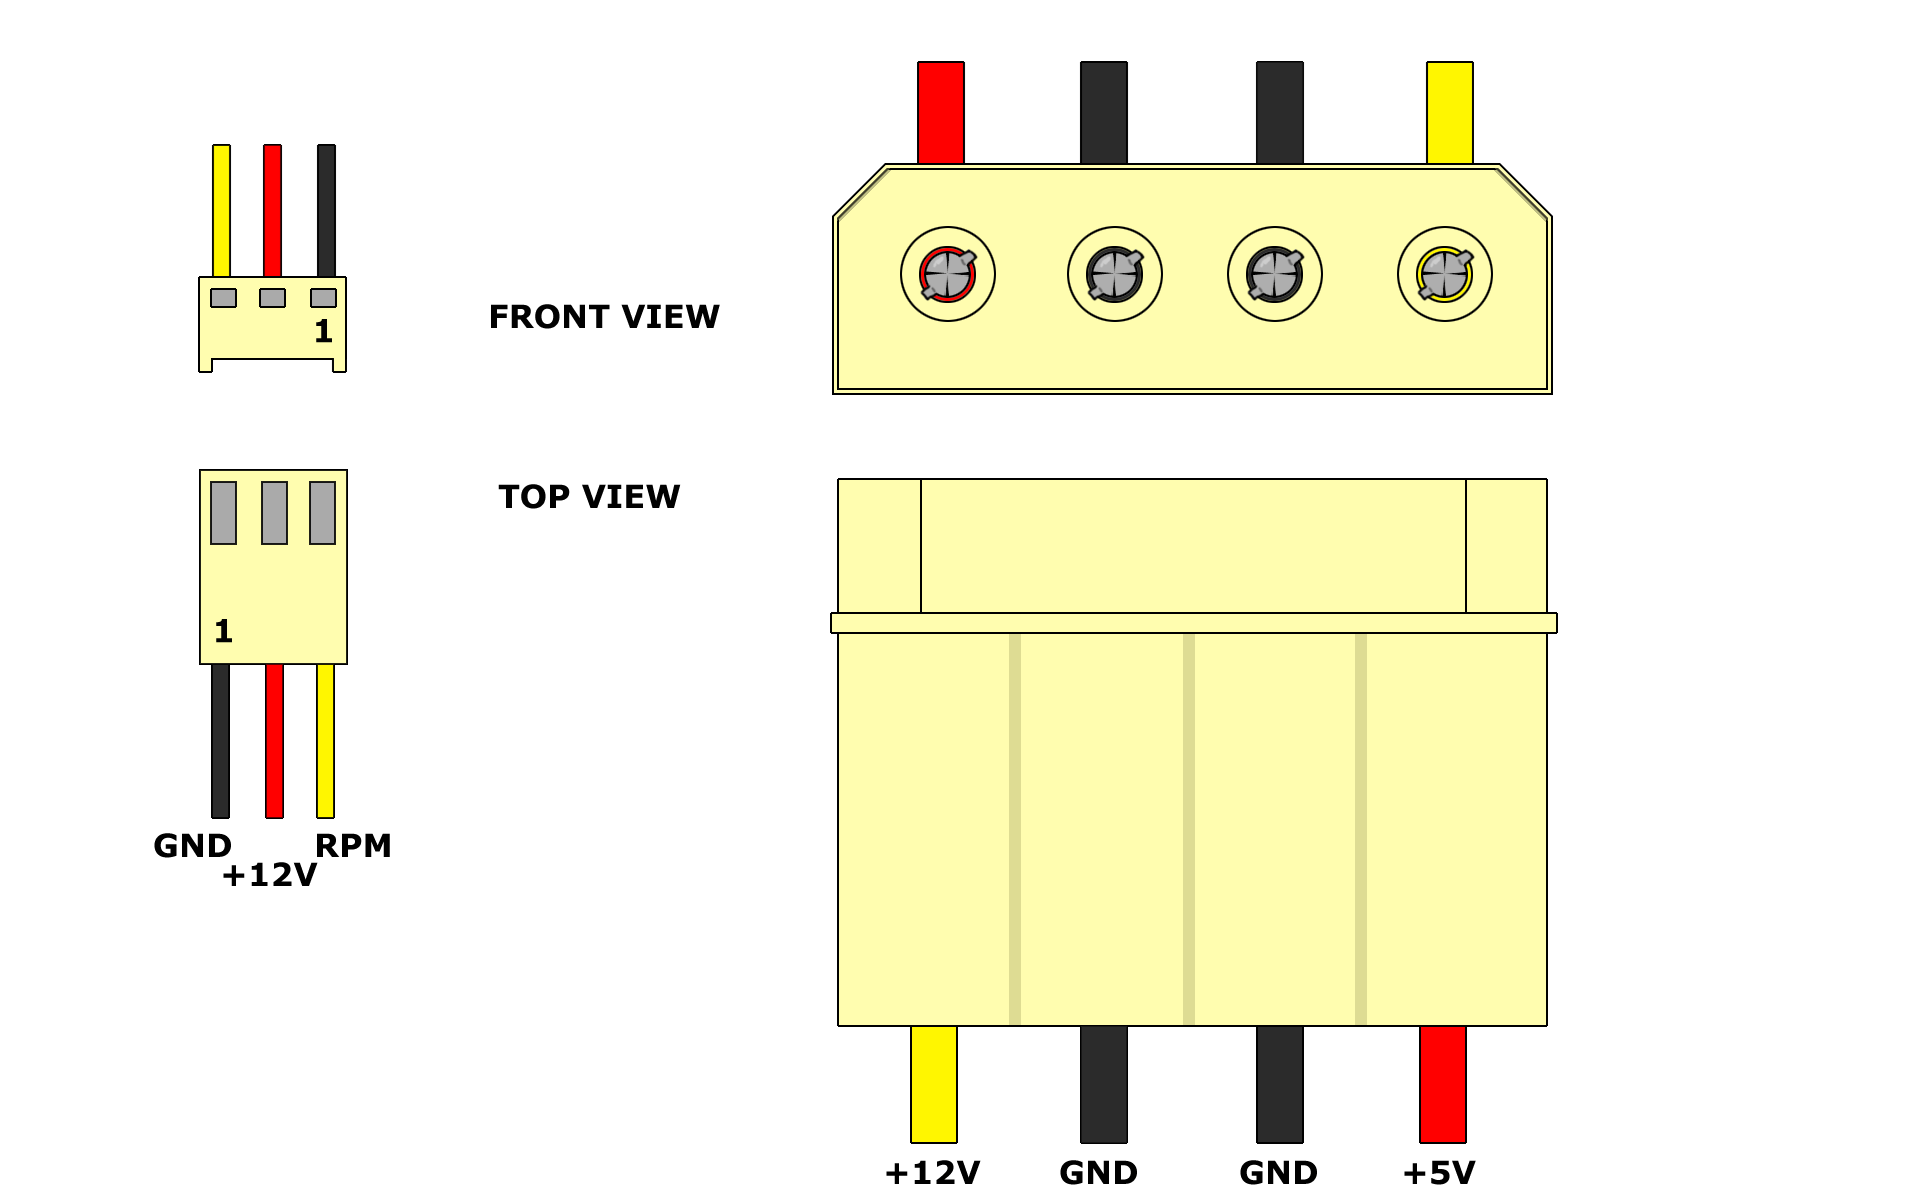 NpPzH?quality\\\\\\\=80\\\\\\\&strip\\\\\\\=all cmos camera wiring diagram 12v wiring diagram byblank ccd camera wiring diagram at reclaimingppi.co